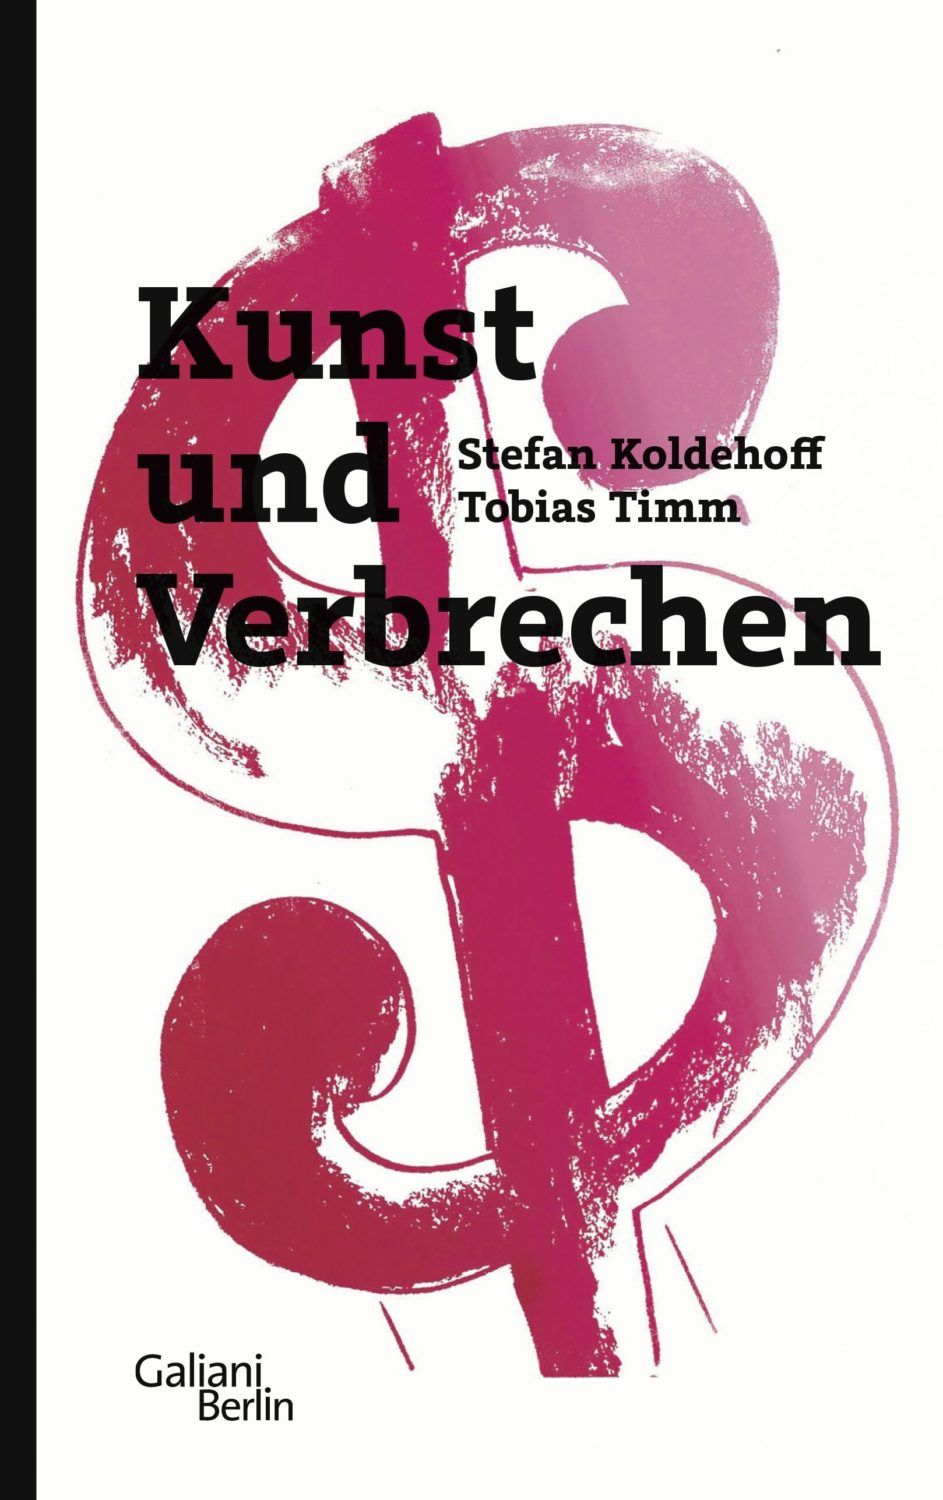 Koldehoff and Timm cover